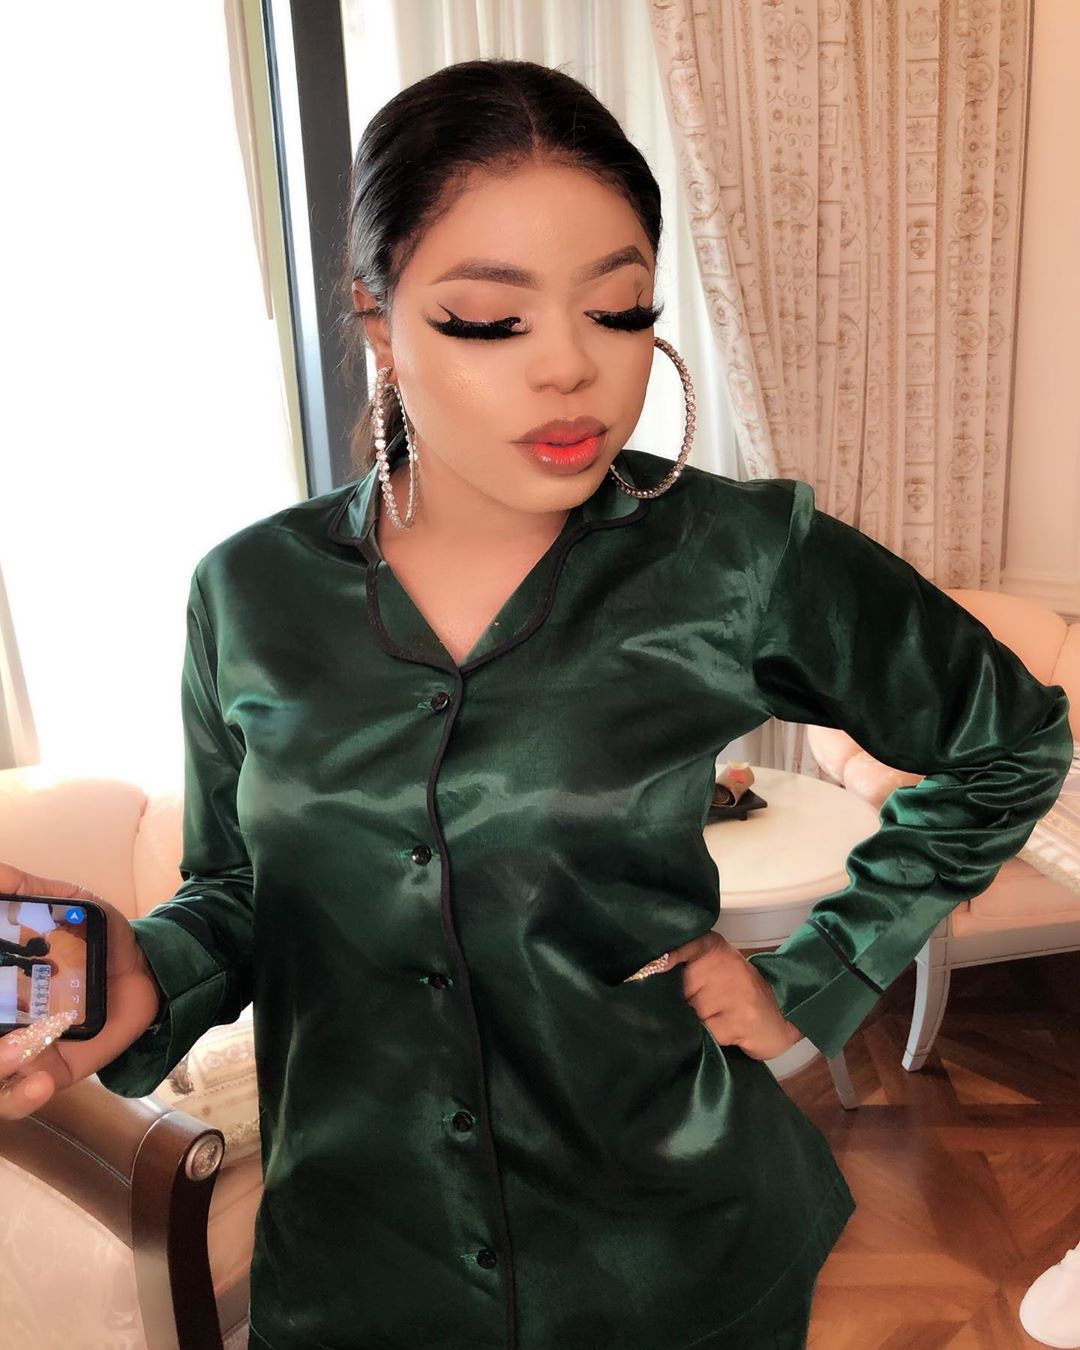 'Bobrisky dressing like a man that he is would make him irrelevant' – Twitter user, says Okuney14